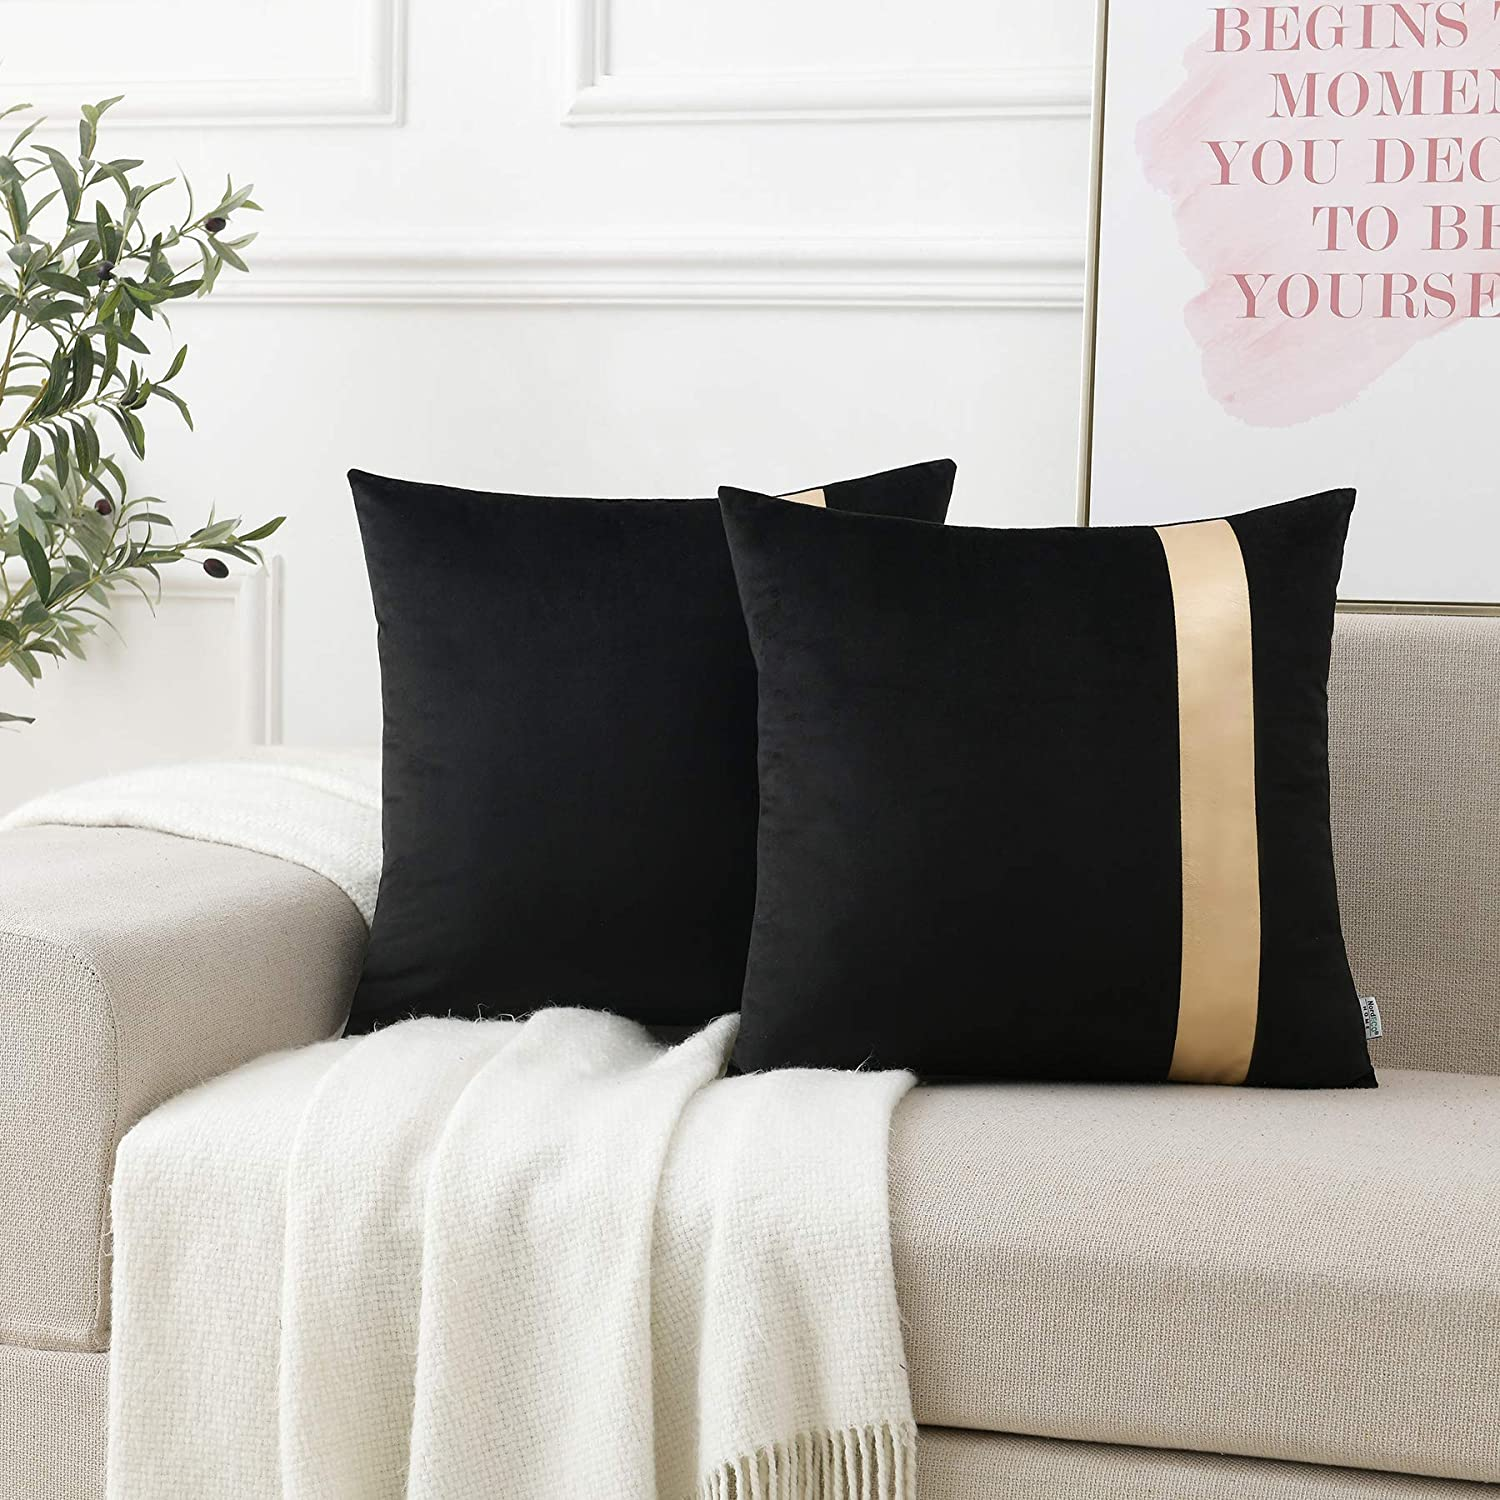 New Free Shipping NordECO HOME PU Leather security Velvet Pi Pillow Throw Covers Decorative